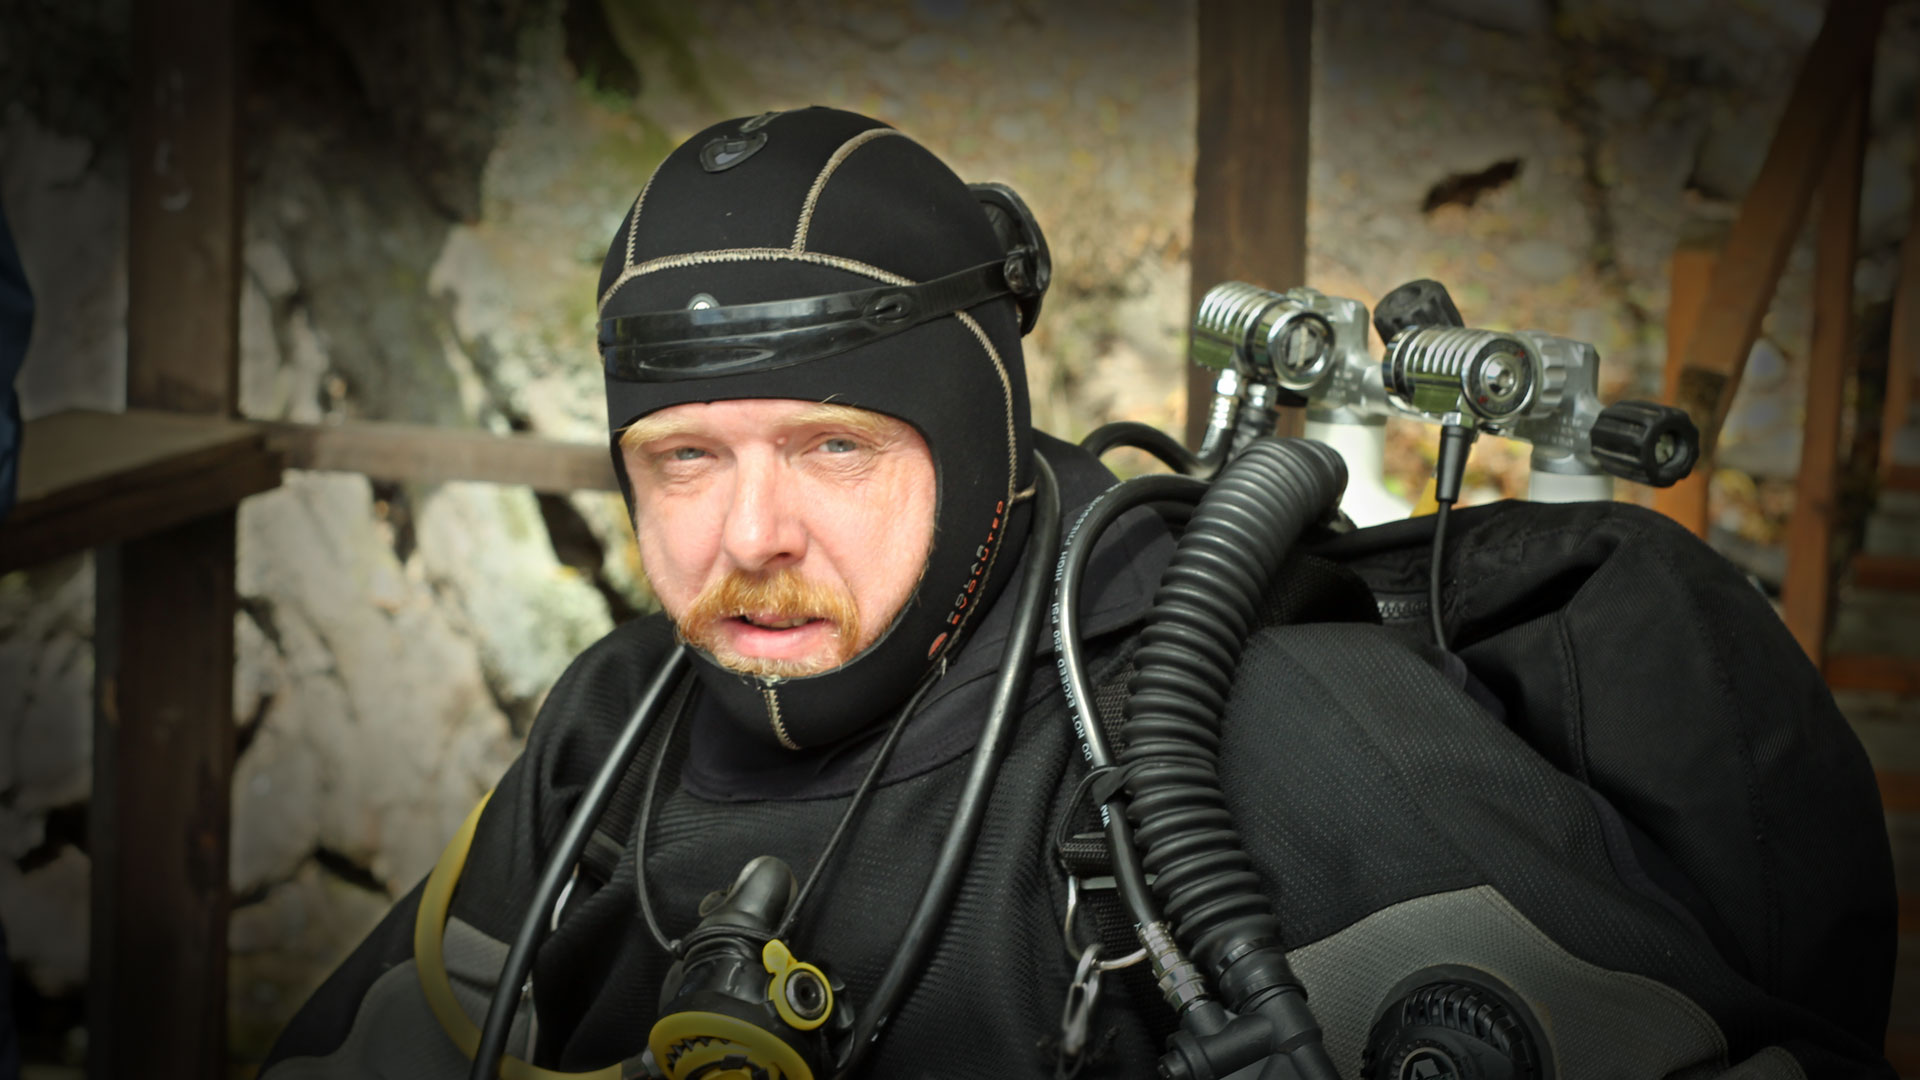 Евгений Корчагин Advanced Recreational Trimix Diver IANTD – поздравляем!